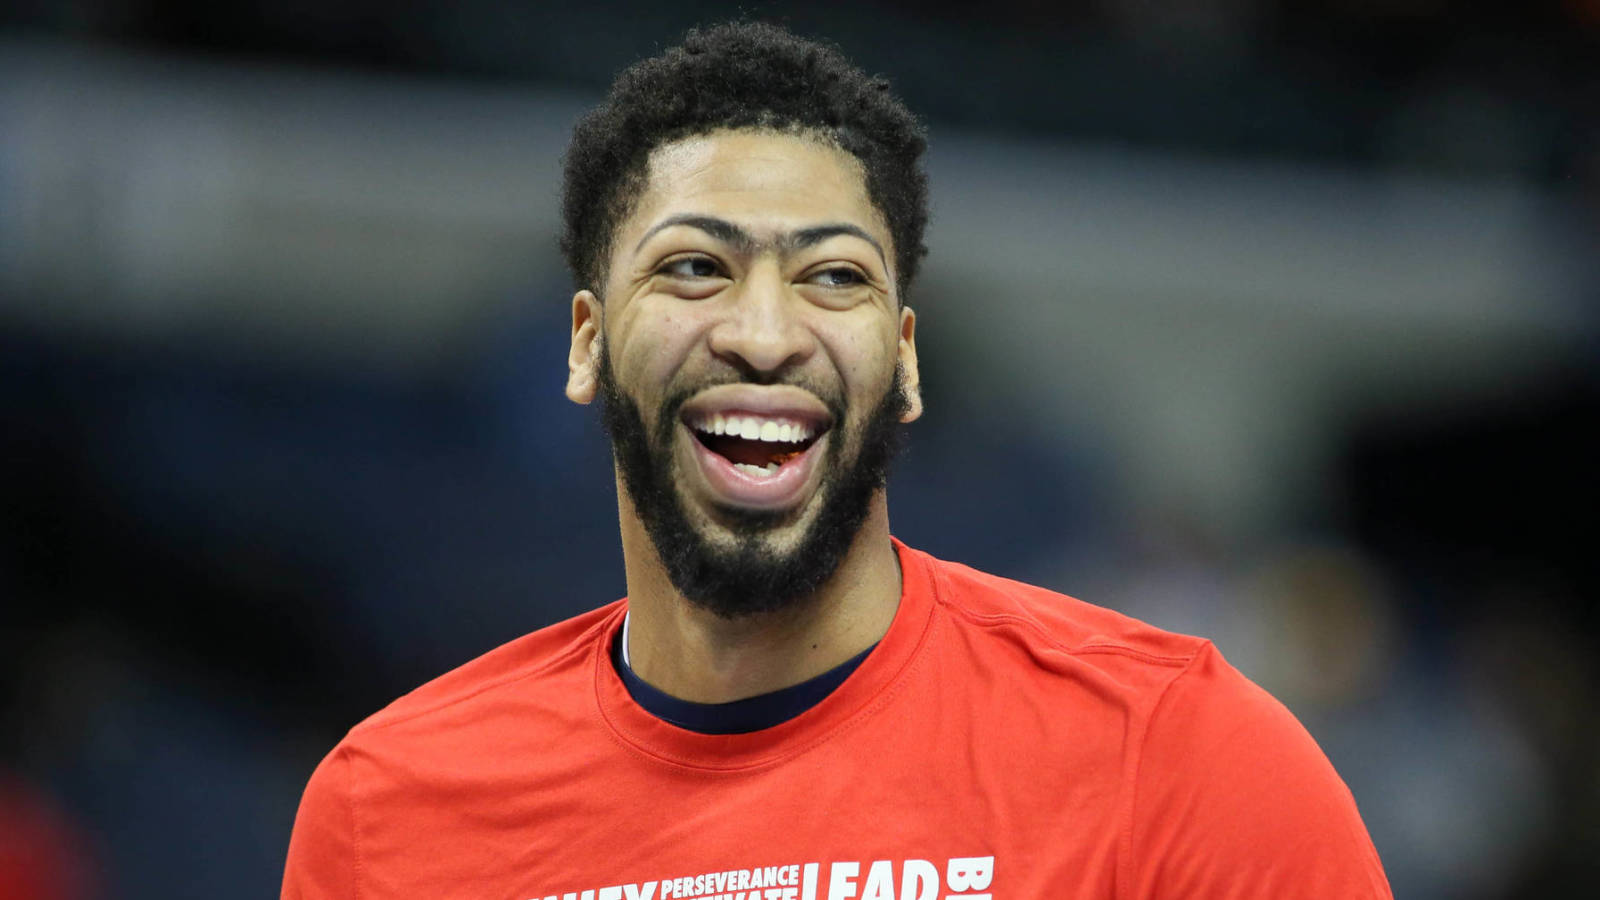 Anthony Davis plans to play rest of season, confirms trade list